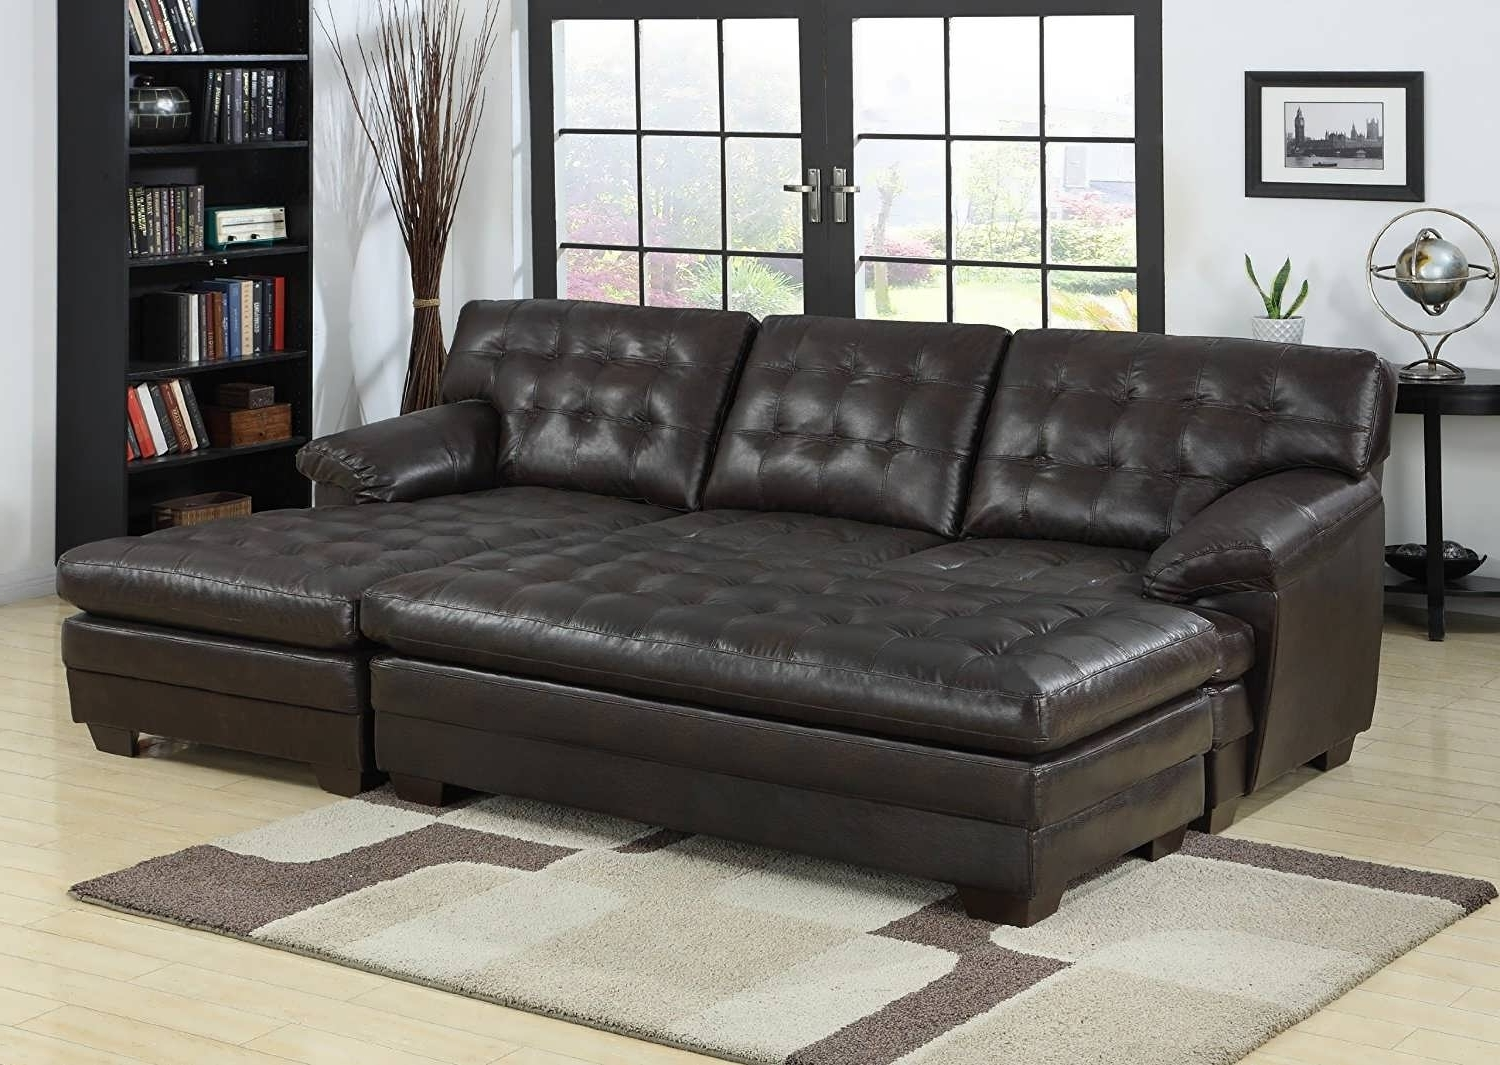 Chaise Couch Lounges Regarding Favorite Sofa : U Shaped Sectional Sofa Sectional Sofa With Chaise Grey (View 4 of 15)